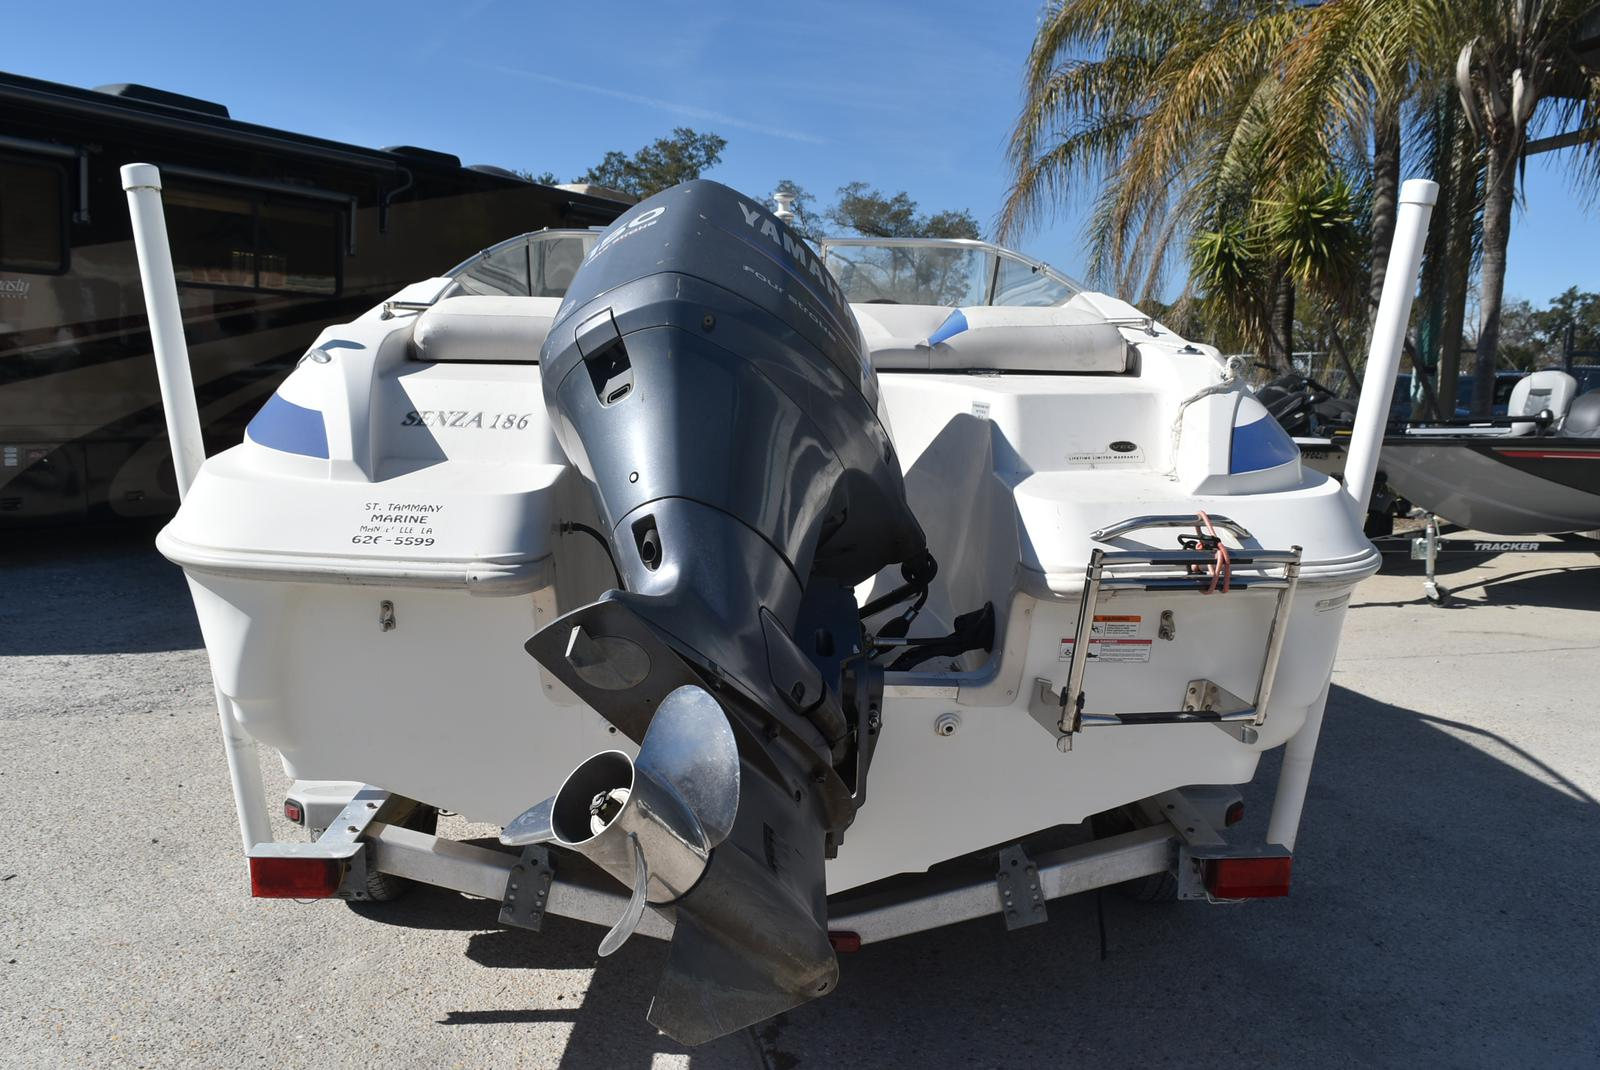 2007 Larson boat for sale, model of the boat is Senza 186 & Image # 15 of 15